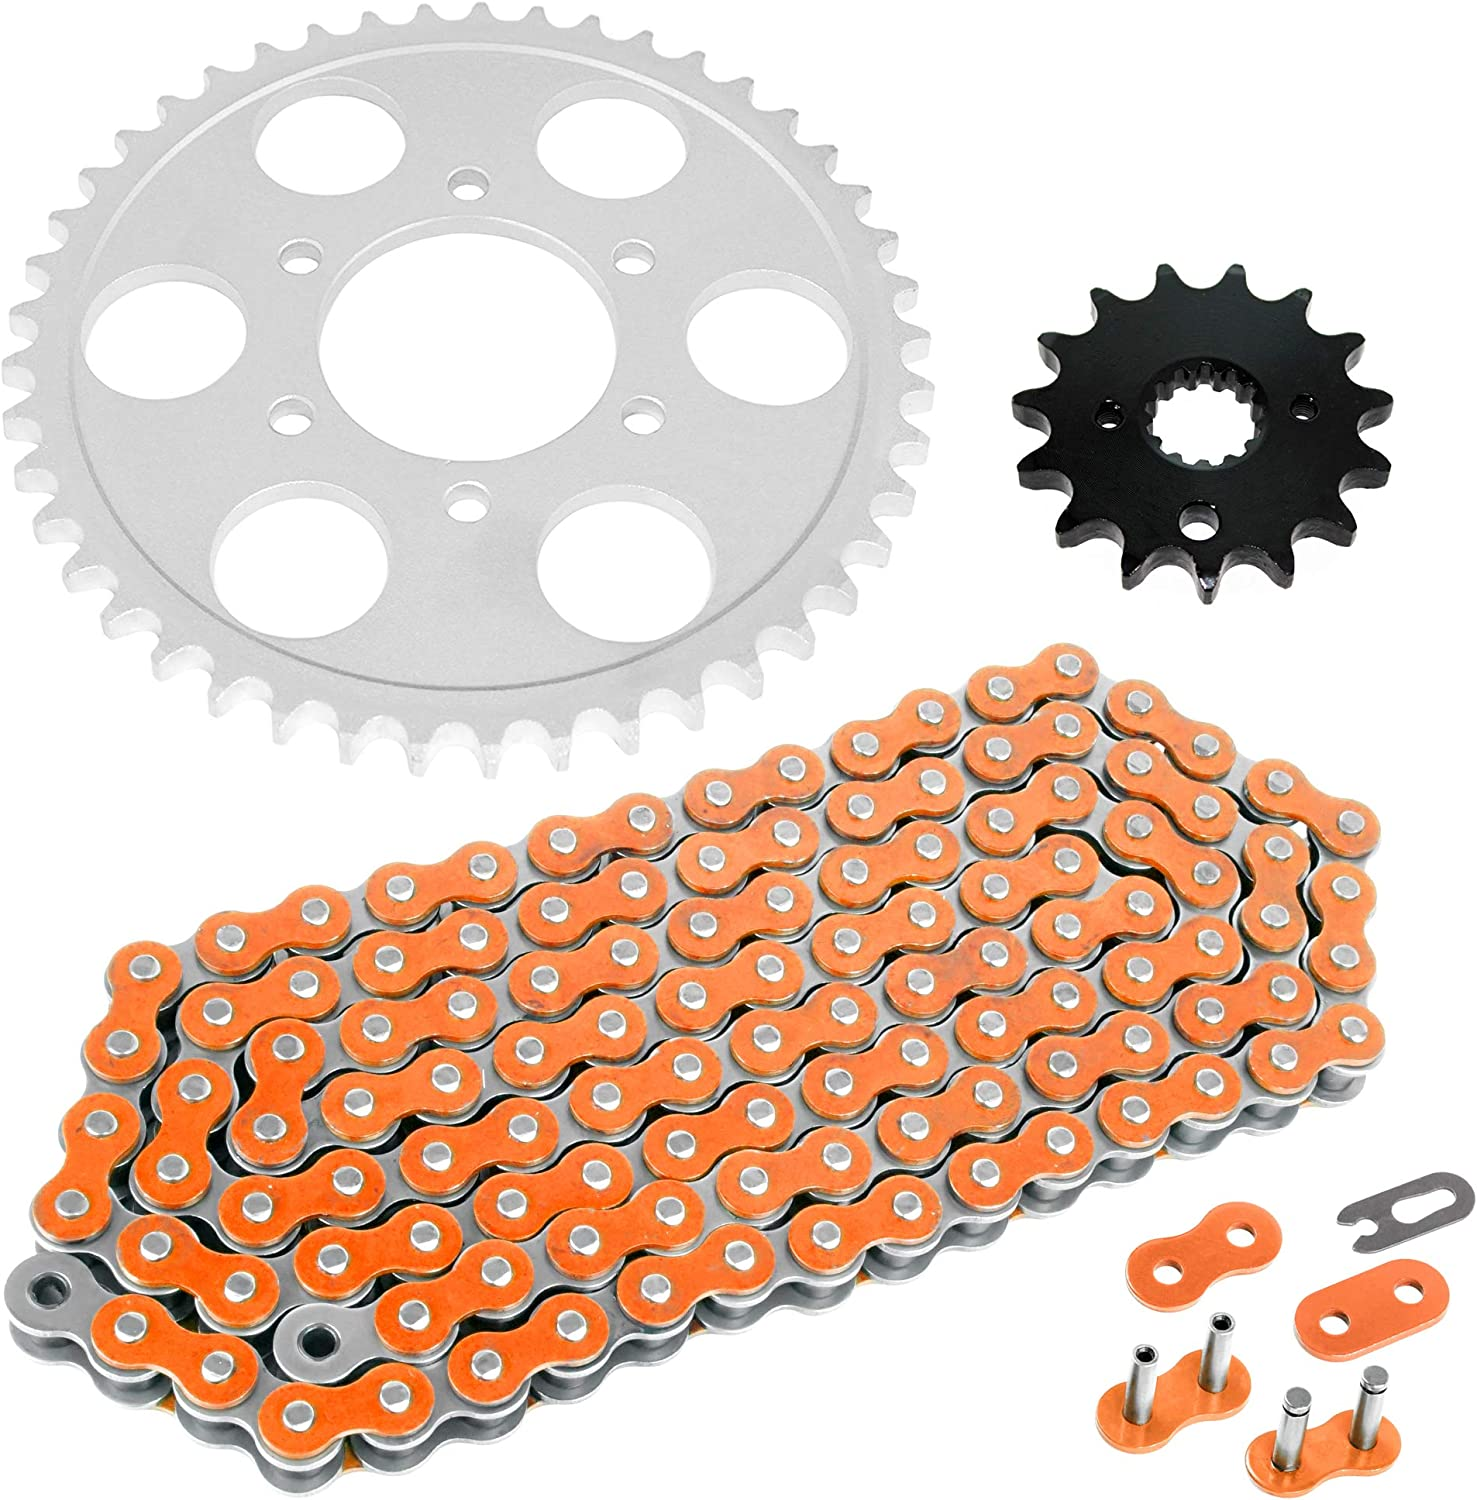 Caltric Drive Chain and Sprockets fits SUZUKI GSF1200 GSF 1200S Bandit 1200 1995-2005